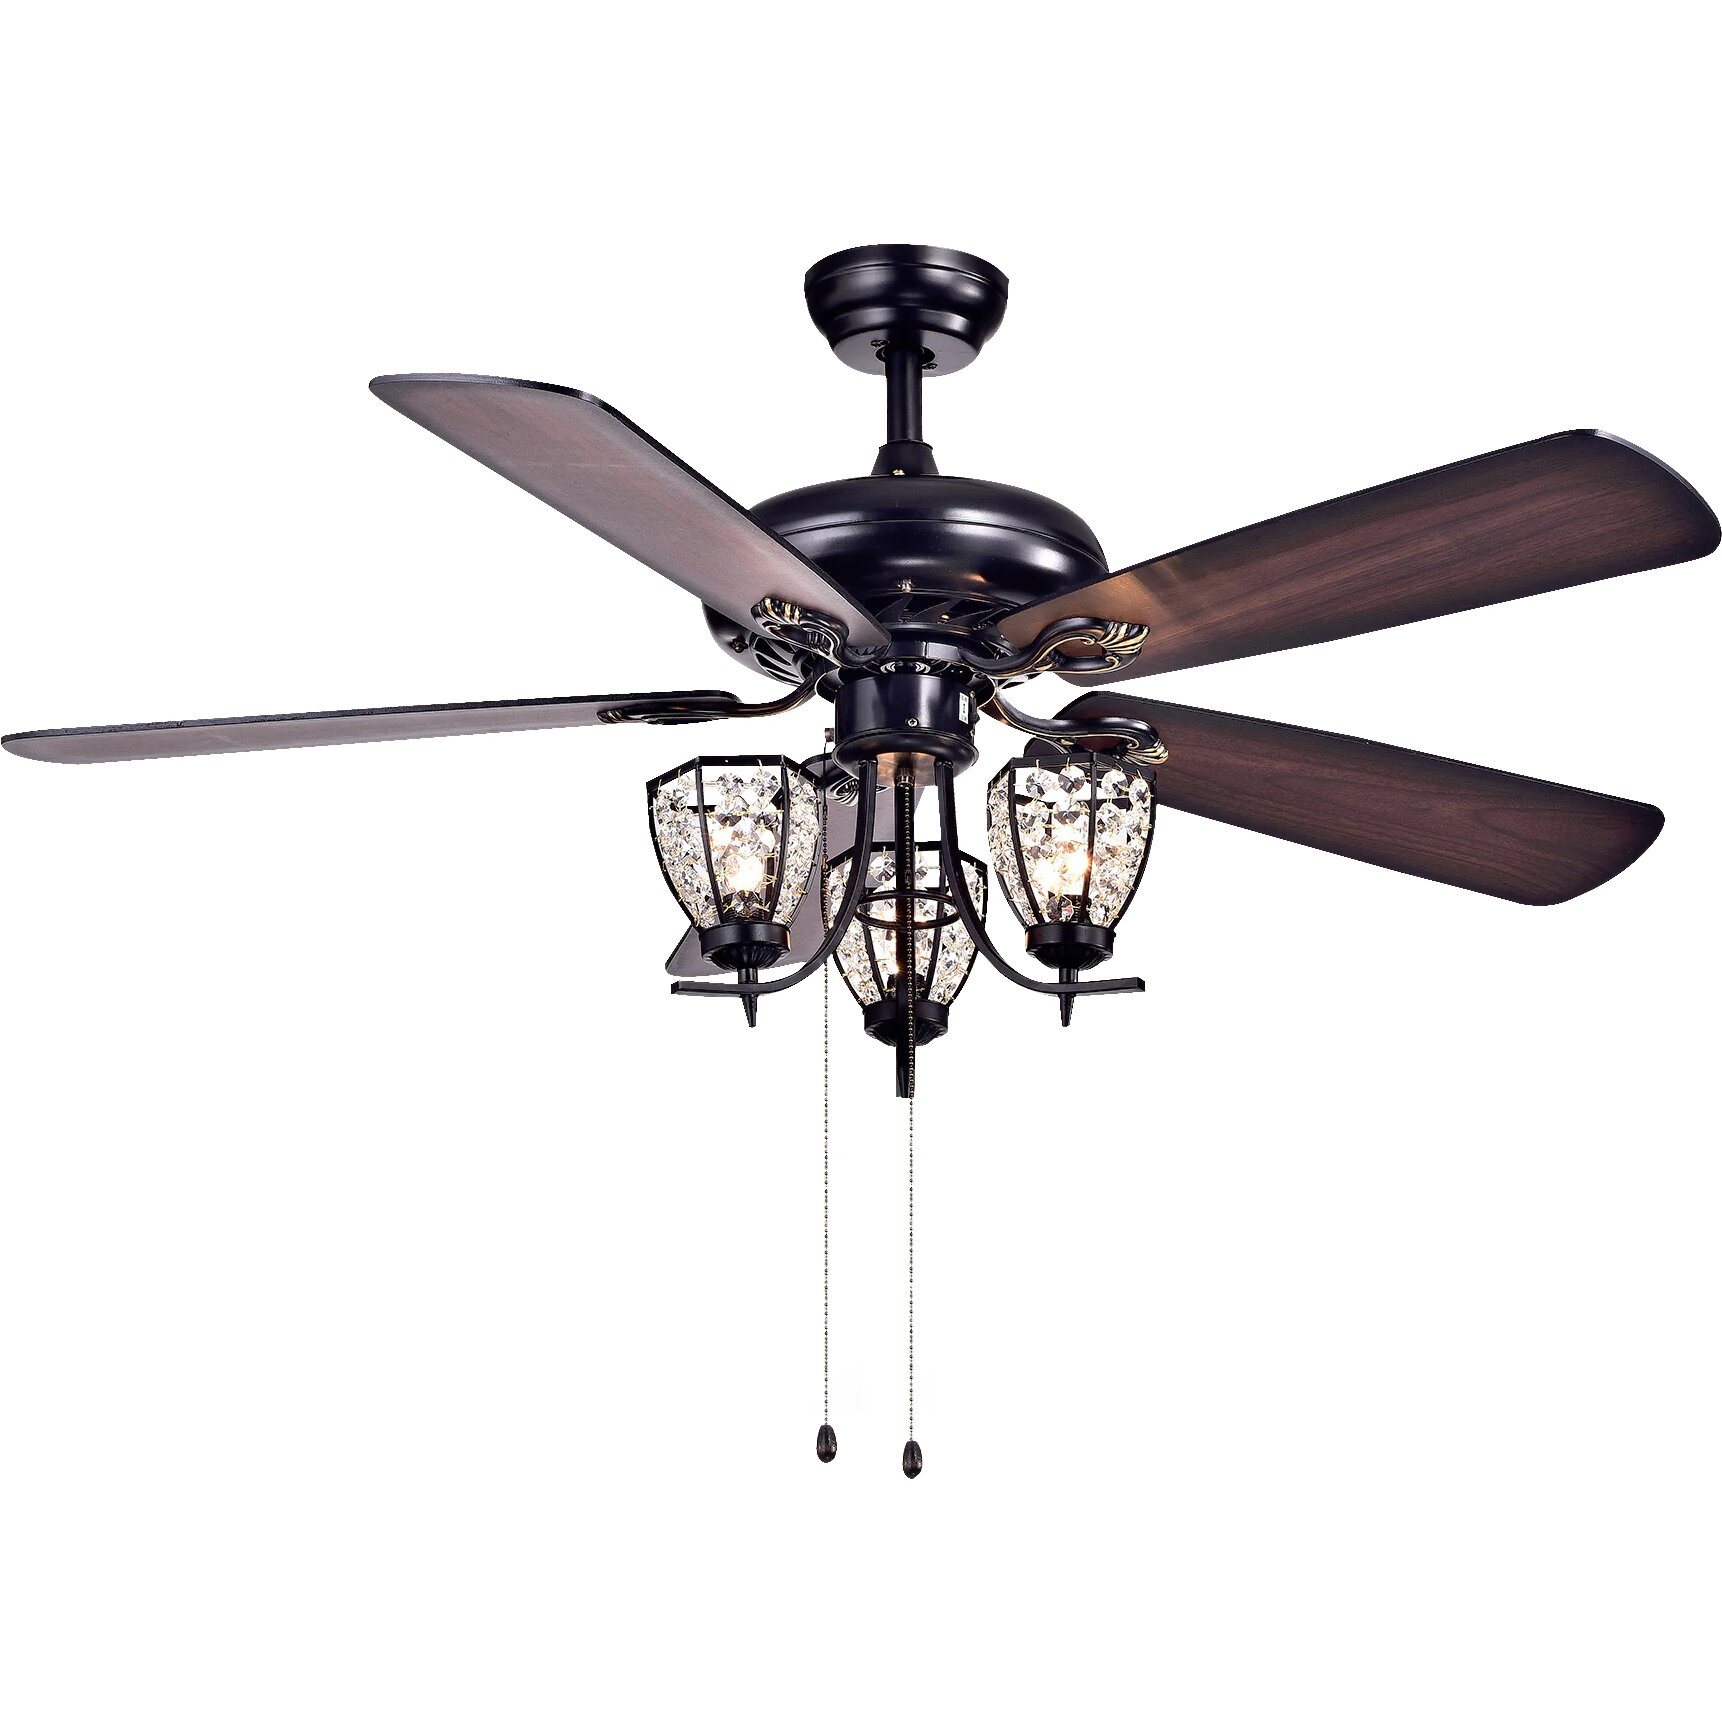 Ceiling Light Fan: Warehouse Of Tiffany Mirabelle 3-Light Under Cabinet